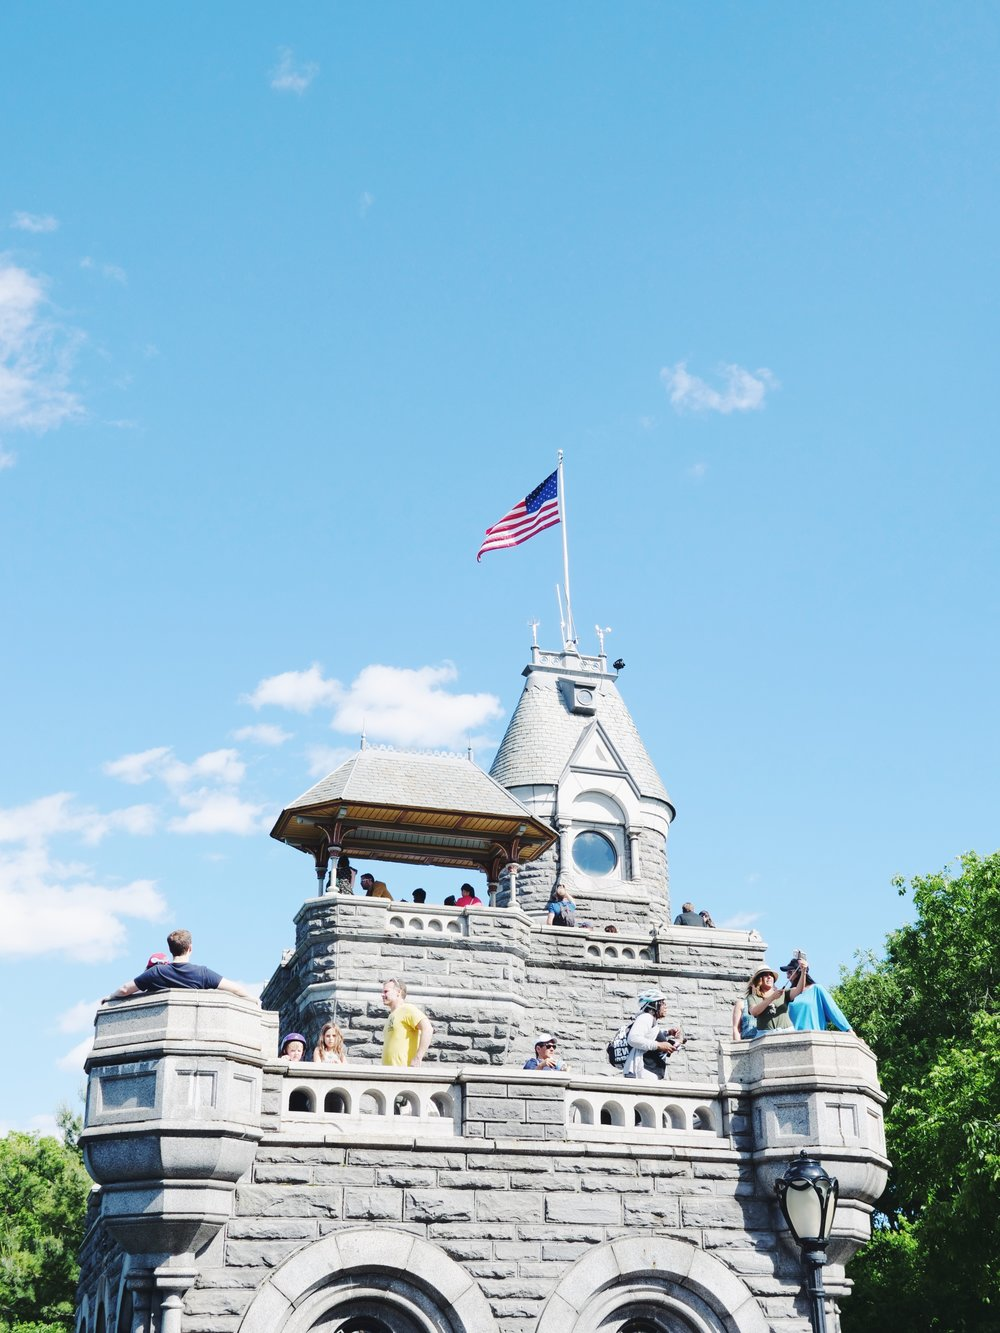 did you know there is a castle in central park? what ISN'T in central park, tho?